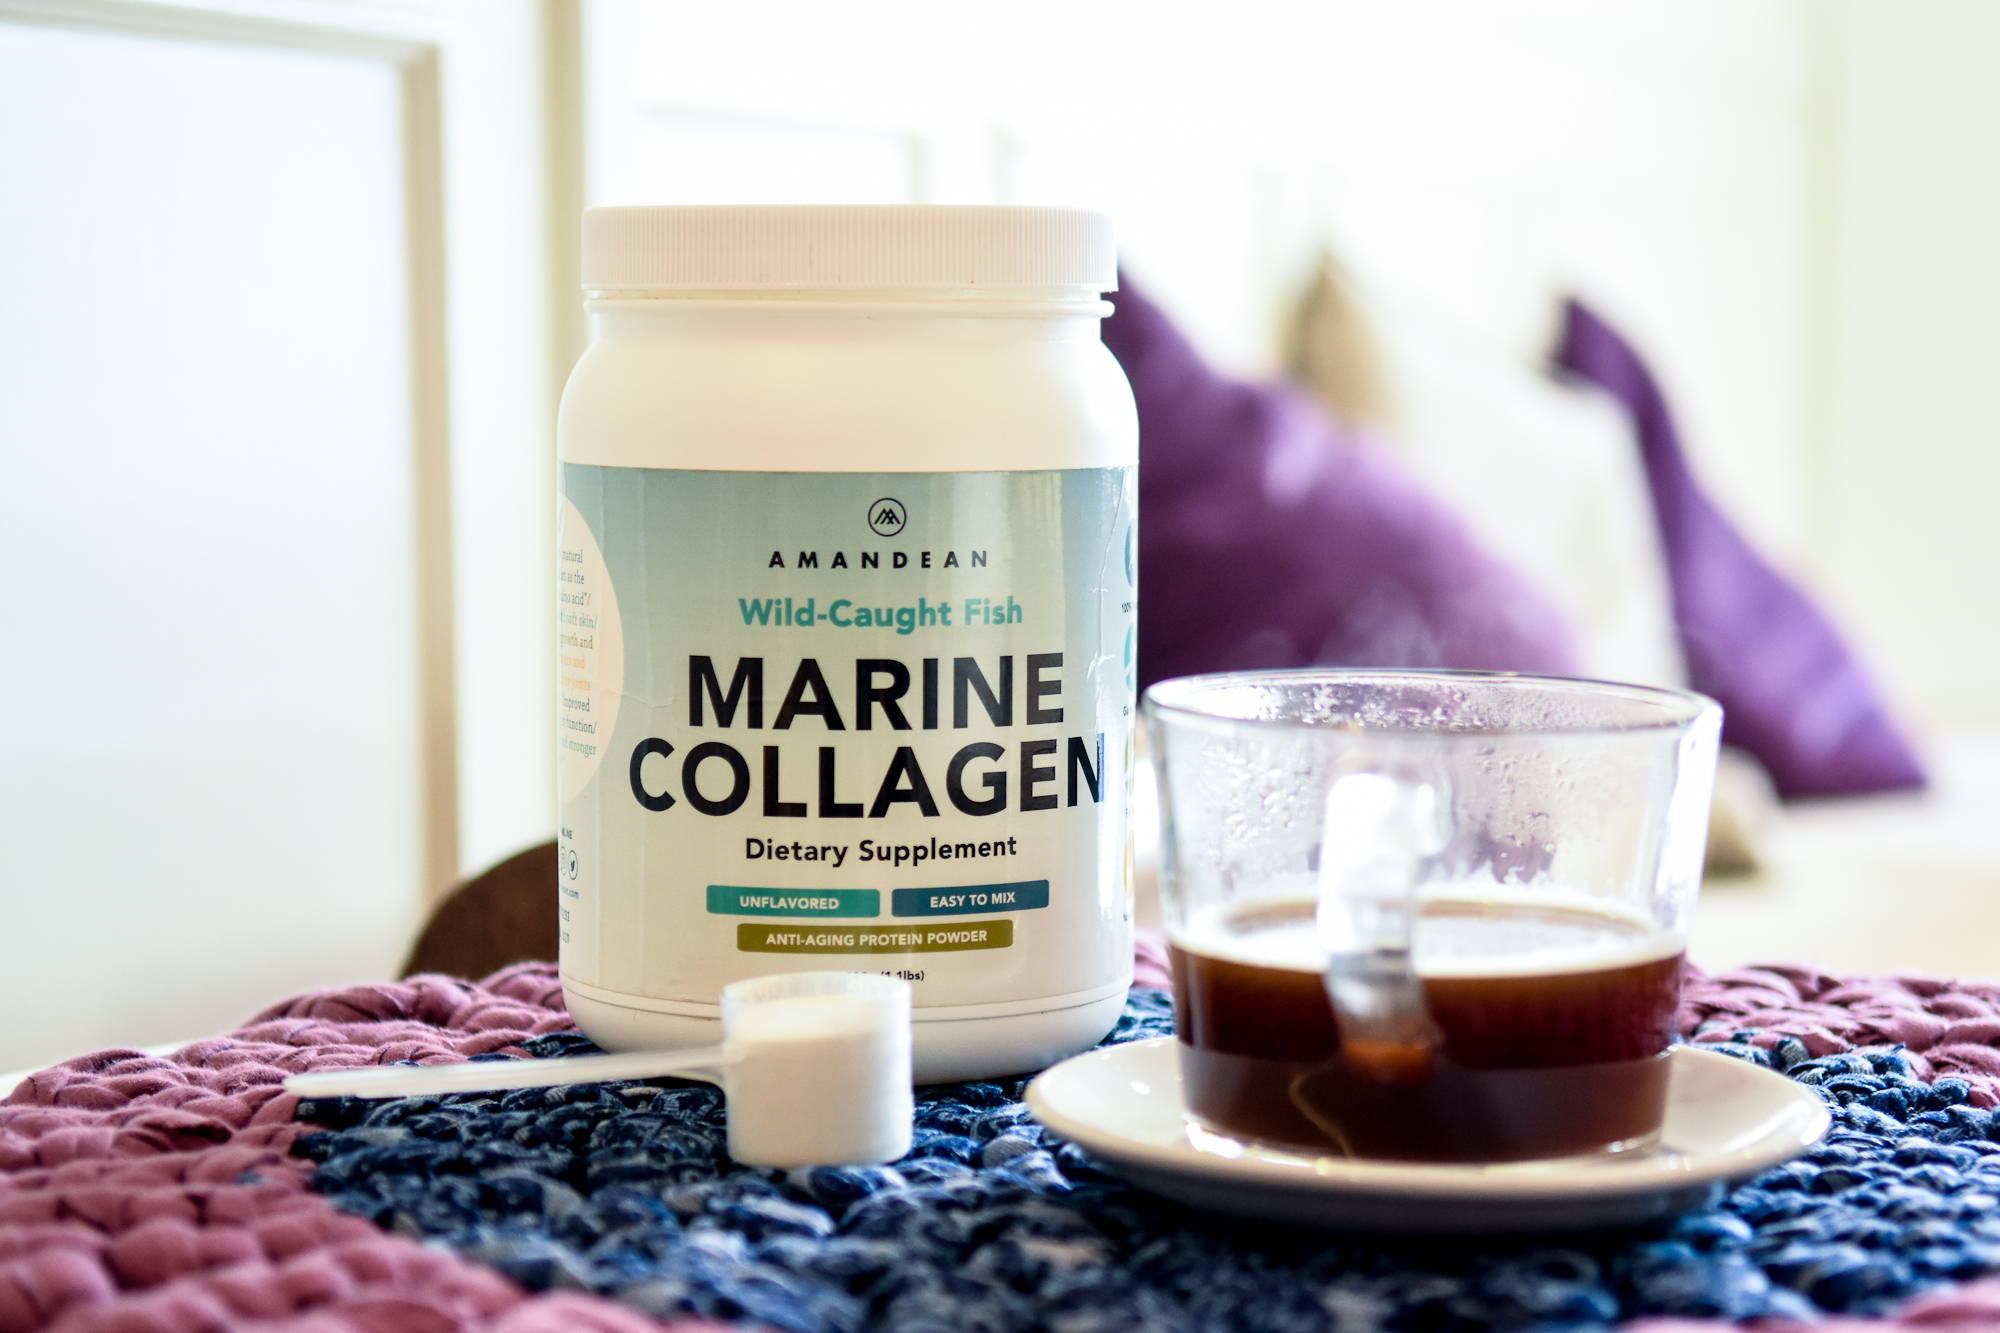 nature-sourced-premium-marine-collagen-to-avoid-injuries-build-muscle-mass